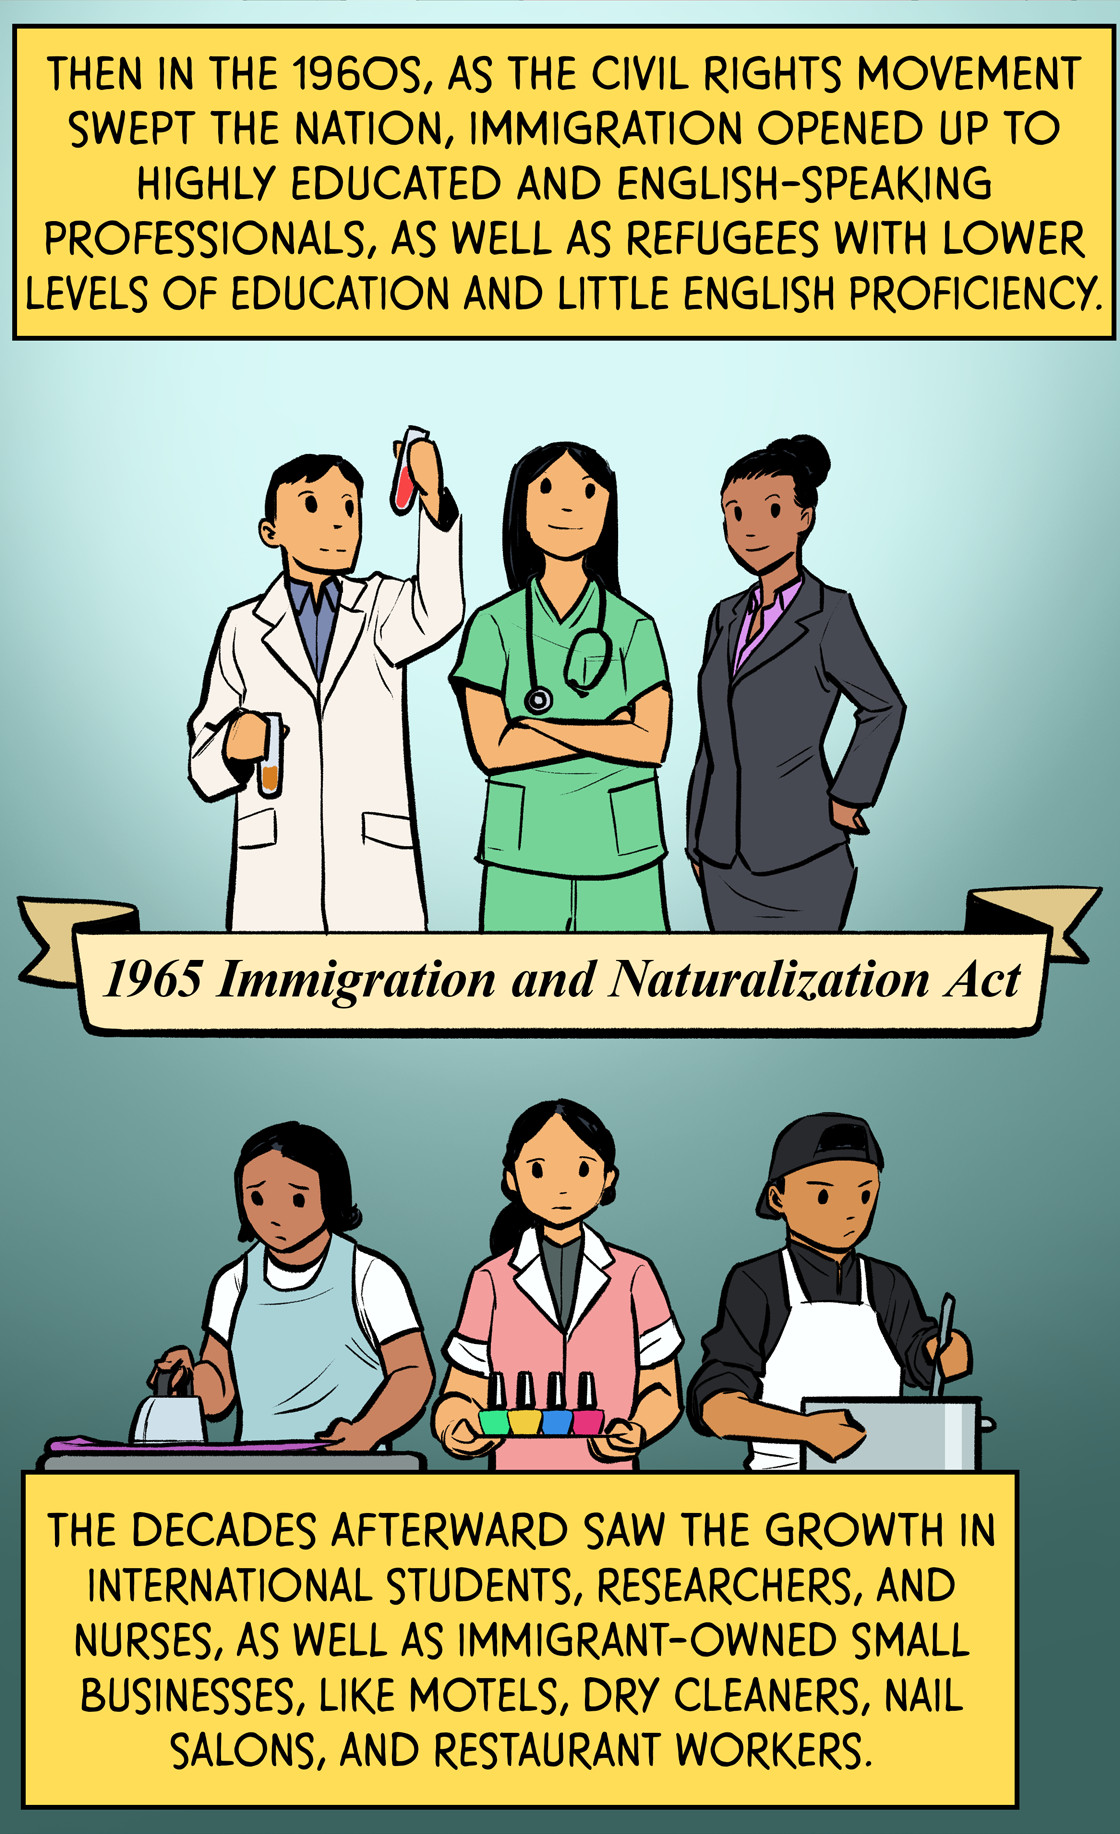 Then, in the 1960s as the civil rights movement swept the nation, immigration opened up to highly educated and English-speaking professionals, as well as refugees with lower levels of education and little English proficiency. The decades afterward saw the growth in international students, researchers, and nurses, as well as immigrant-owned small businesses like motels, dry cleaners, nail salons, and restaurant workers.